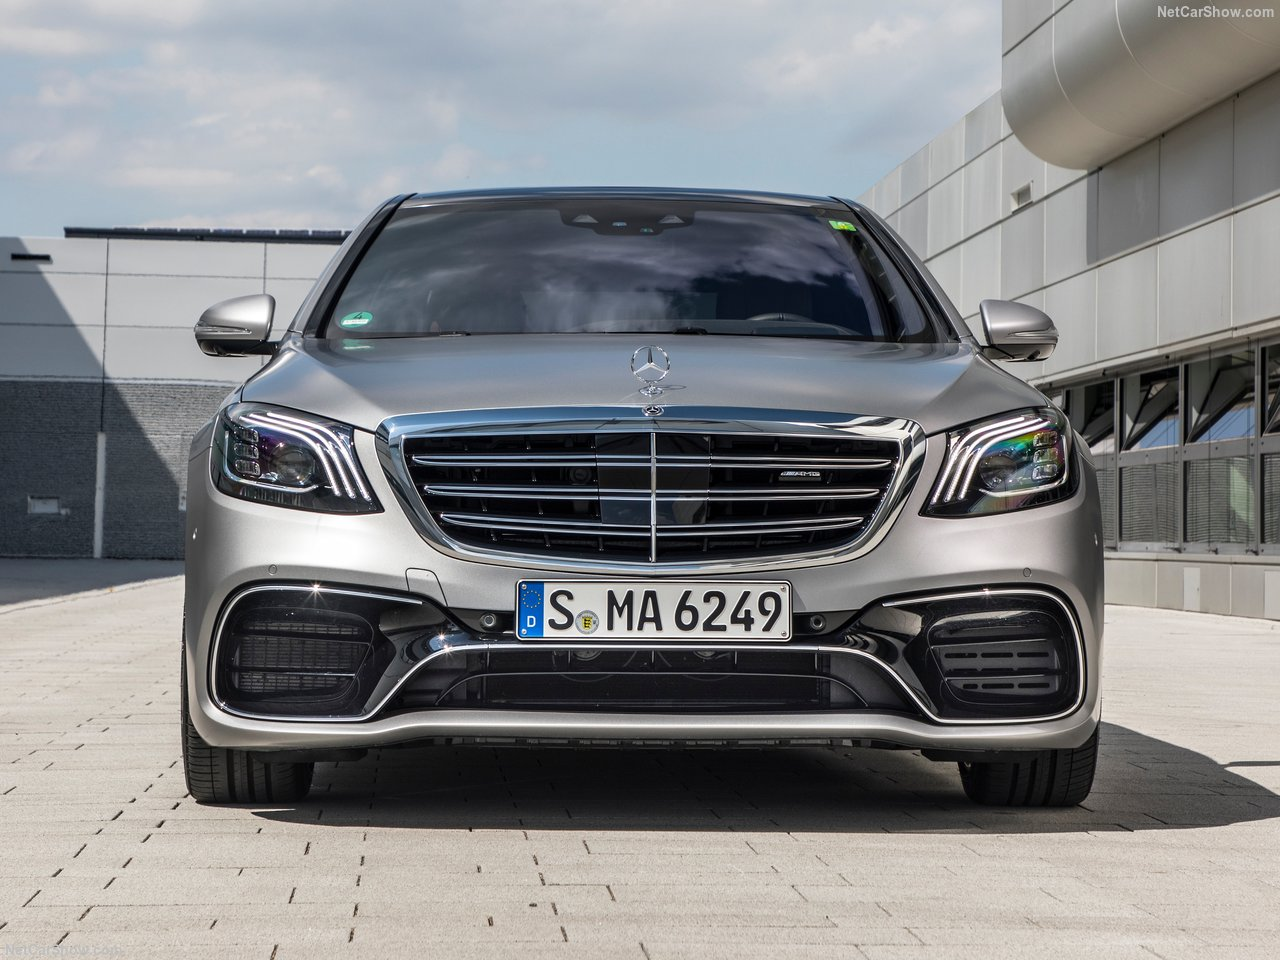 Mercedes-Benz S63 AMG photo 179741